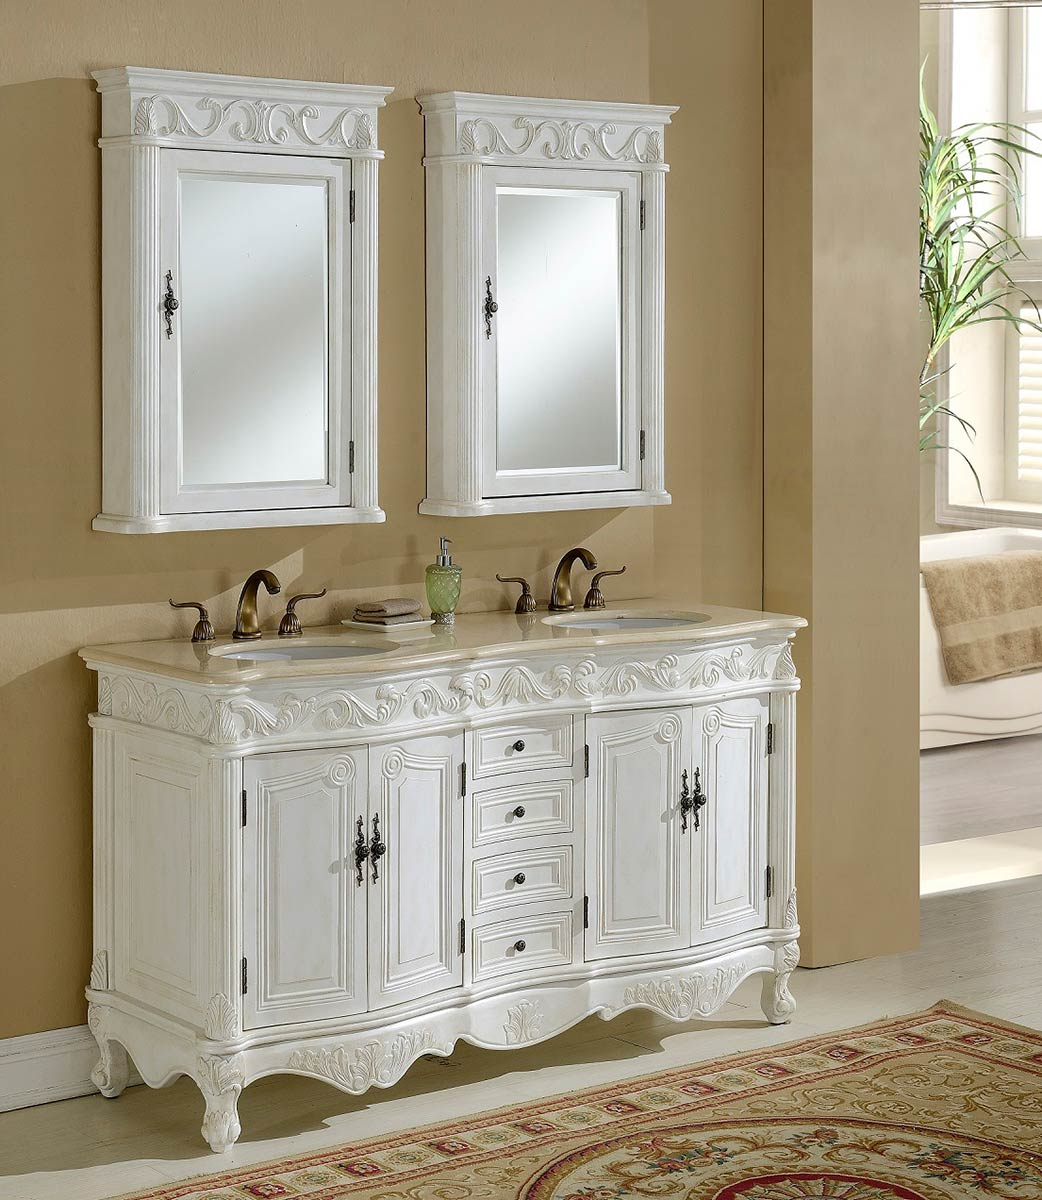 Chelsea Home Villa 60 Inch Vanity With Medicine Cabinet   Antique White